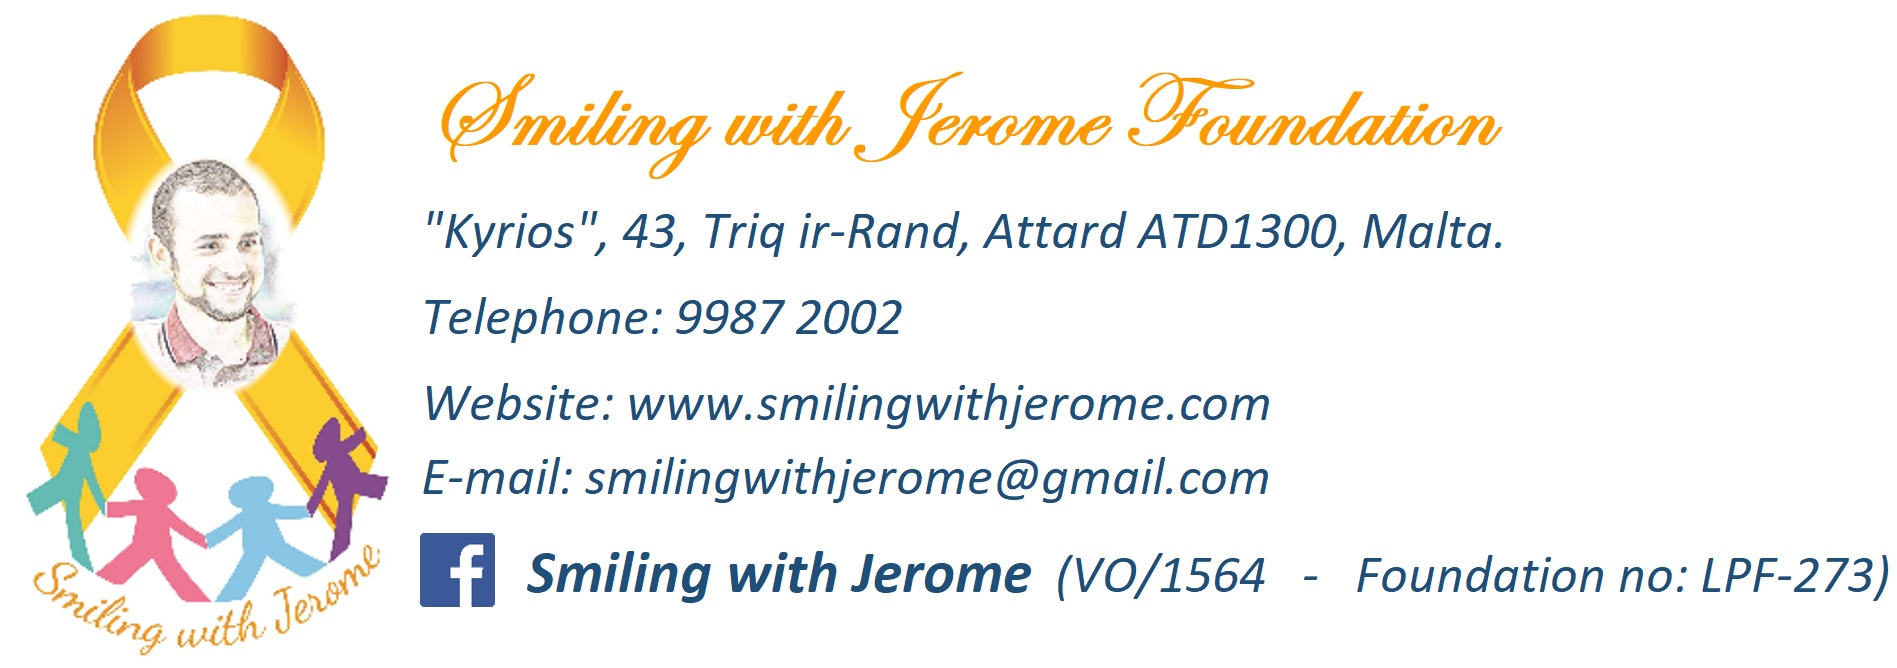 smiling with jerome